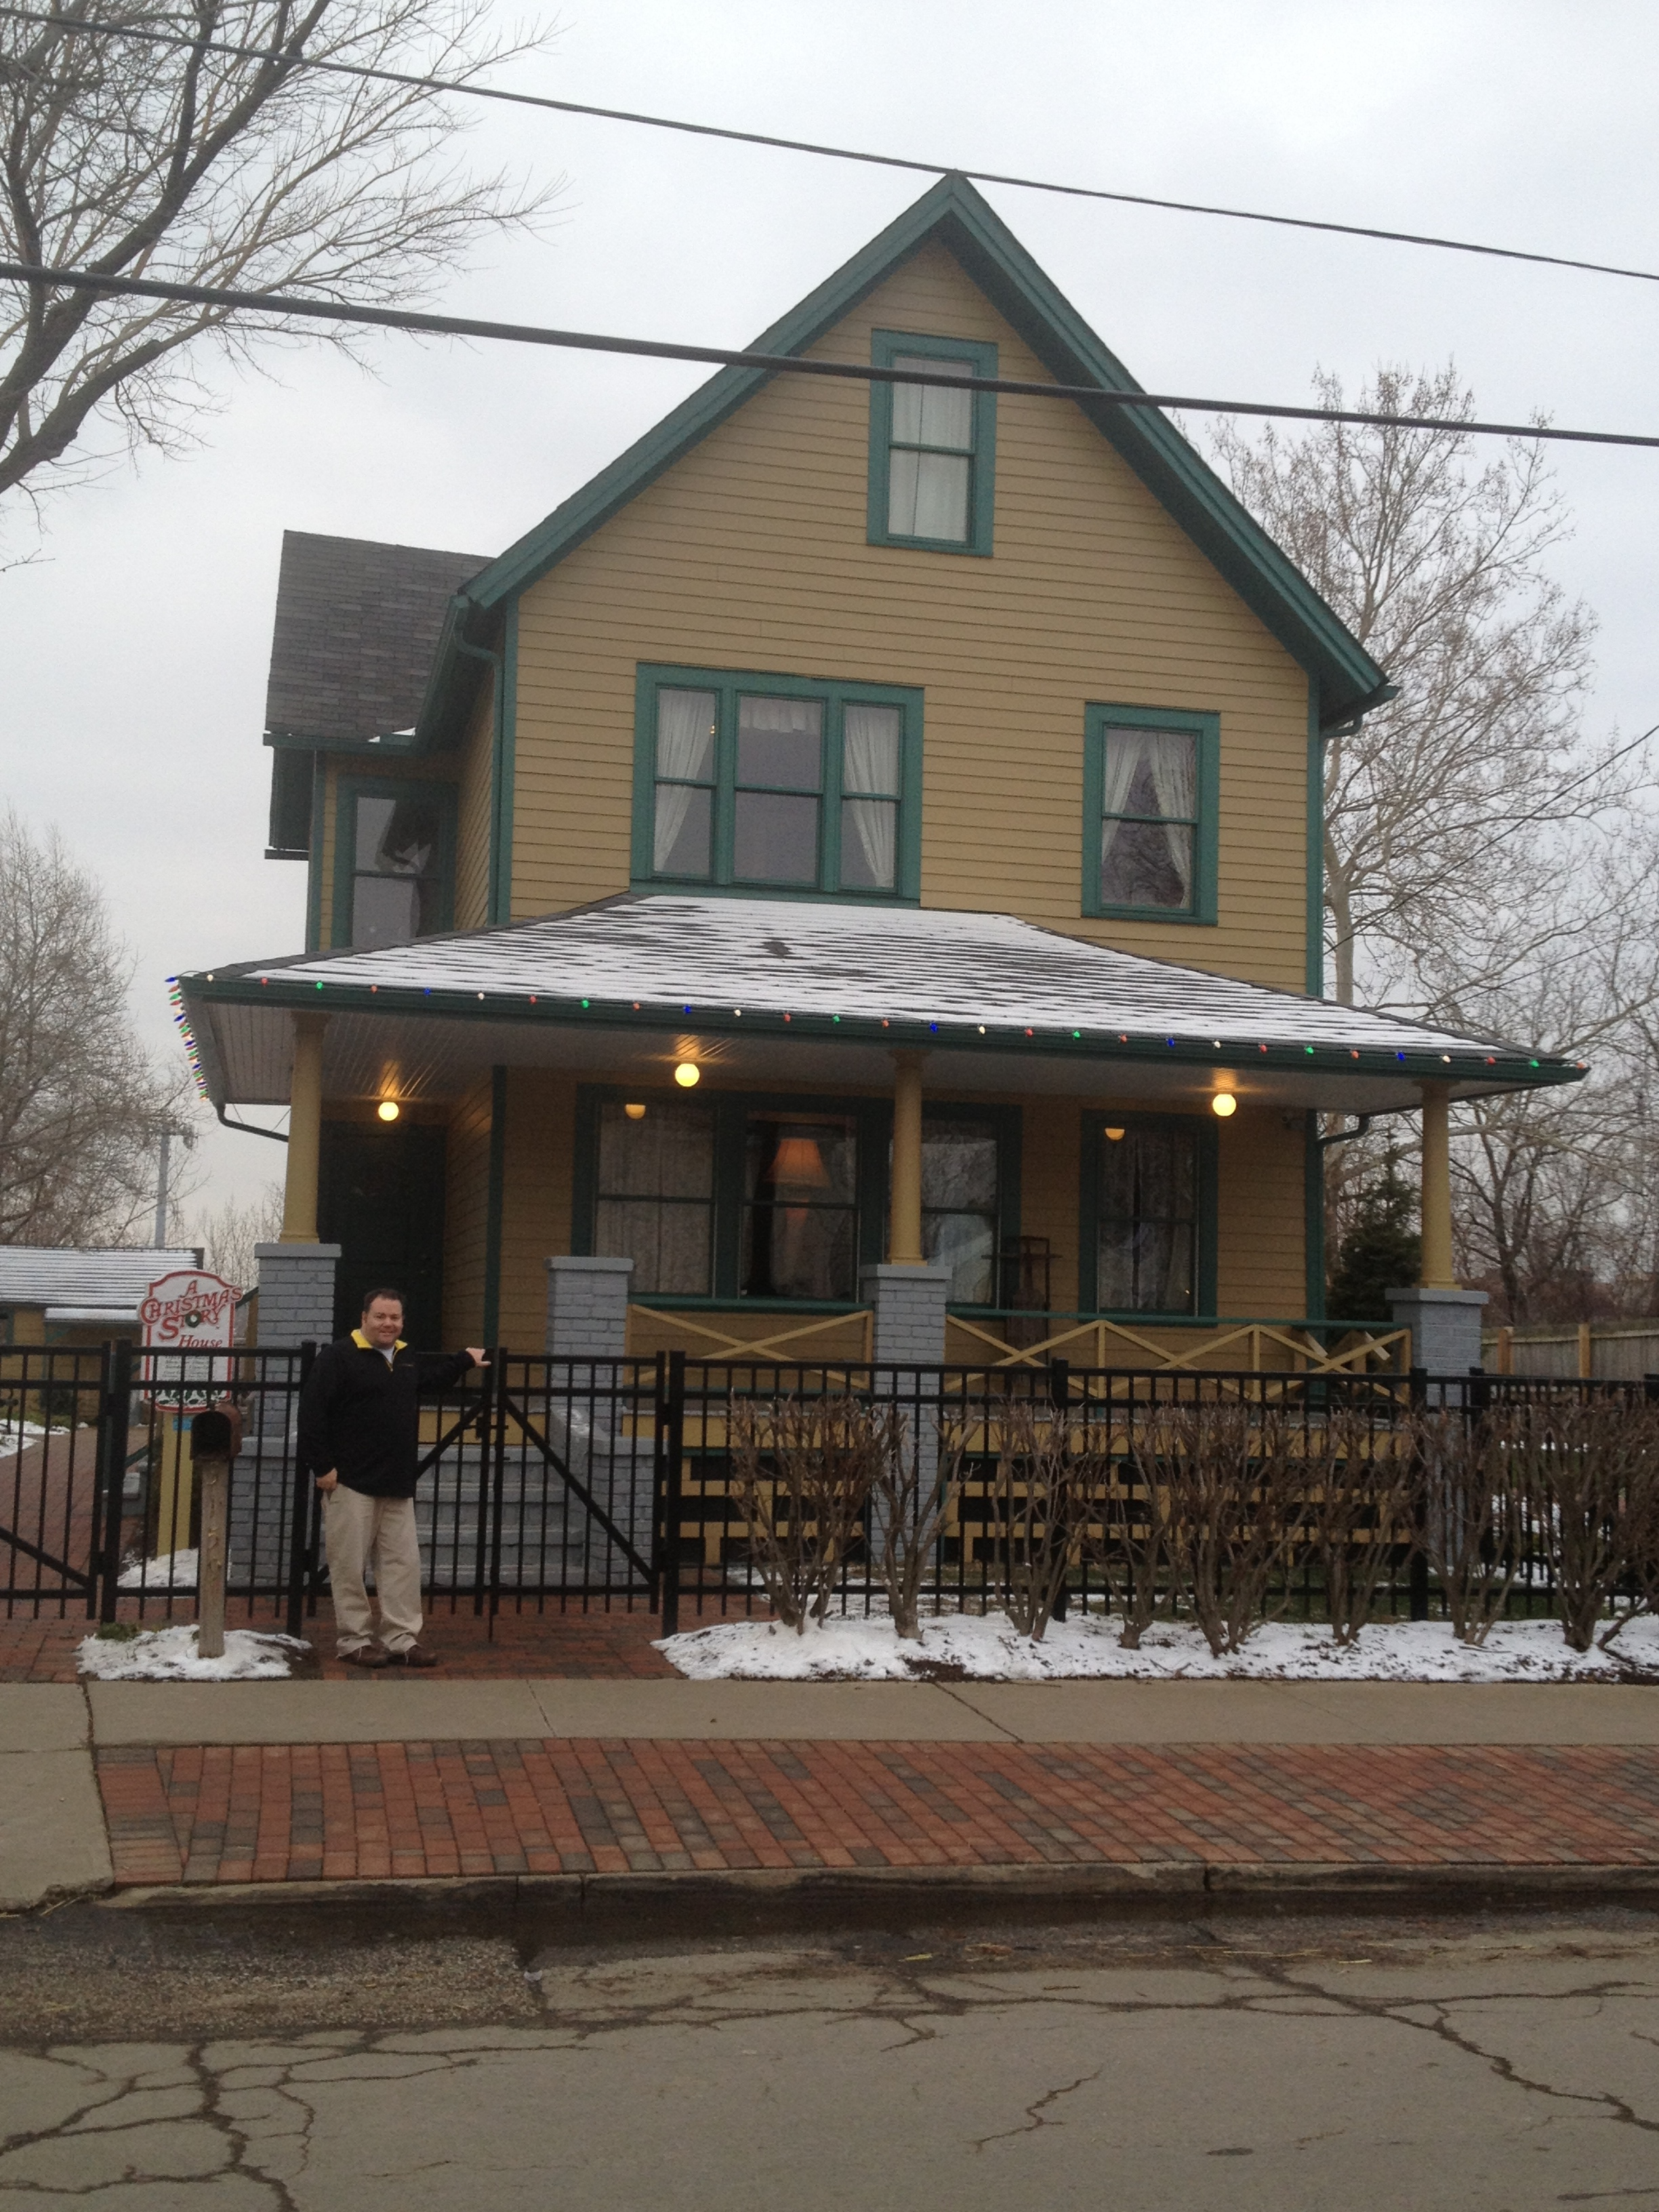 Christmas Story House.Christmas Story House Cleveland Oh The Conahan Experience